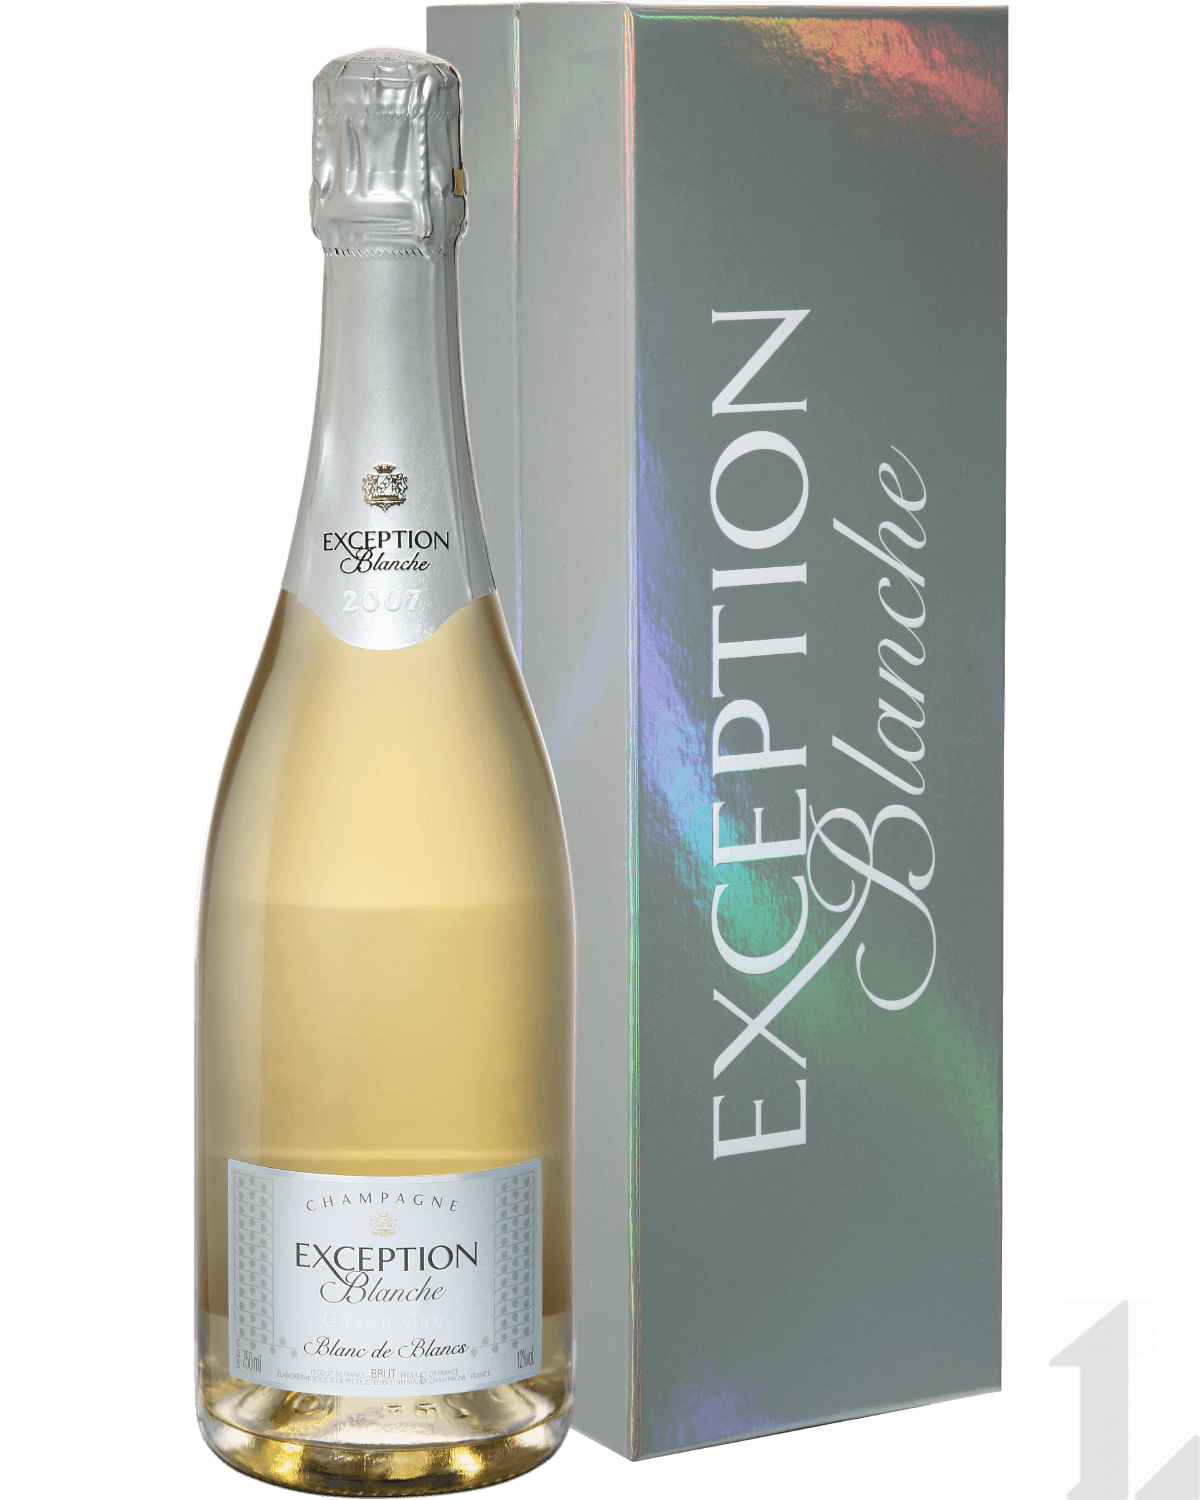 Игристое вино Mailly Grand Cru Exception Blanche Blanc De Blancs Millesime Champagne AOC (gift box) 2009 0.75л